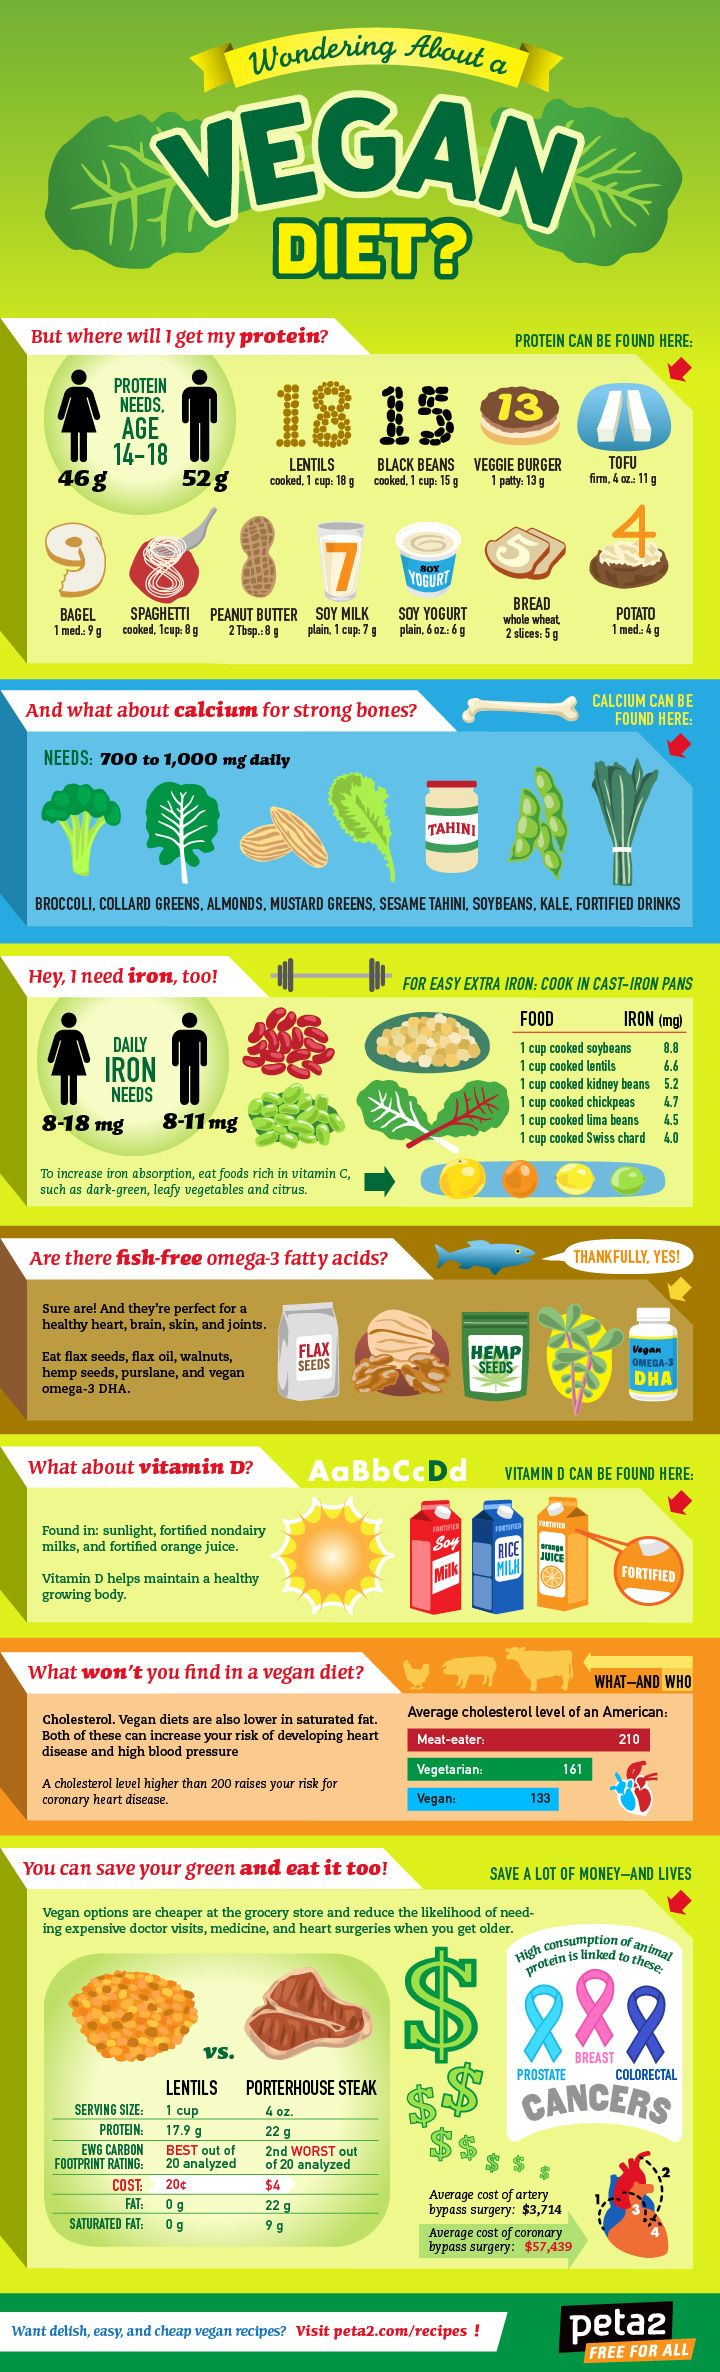 "peta2 ""Wondering About A Vegan Diet?"" inforgraphic, I'm not going vegan but it's nice to see where to get protein without meat."